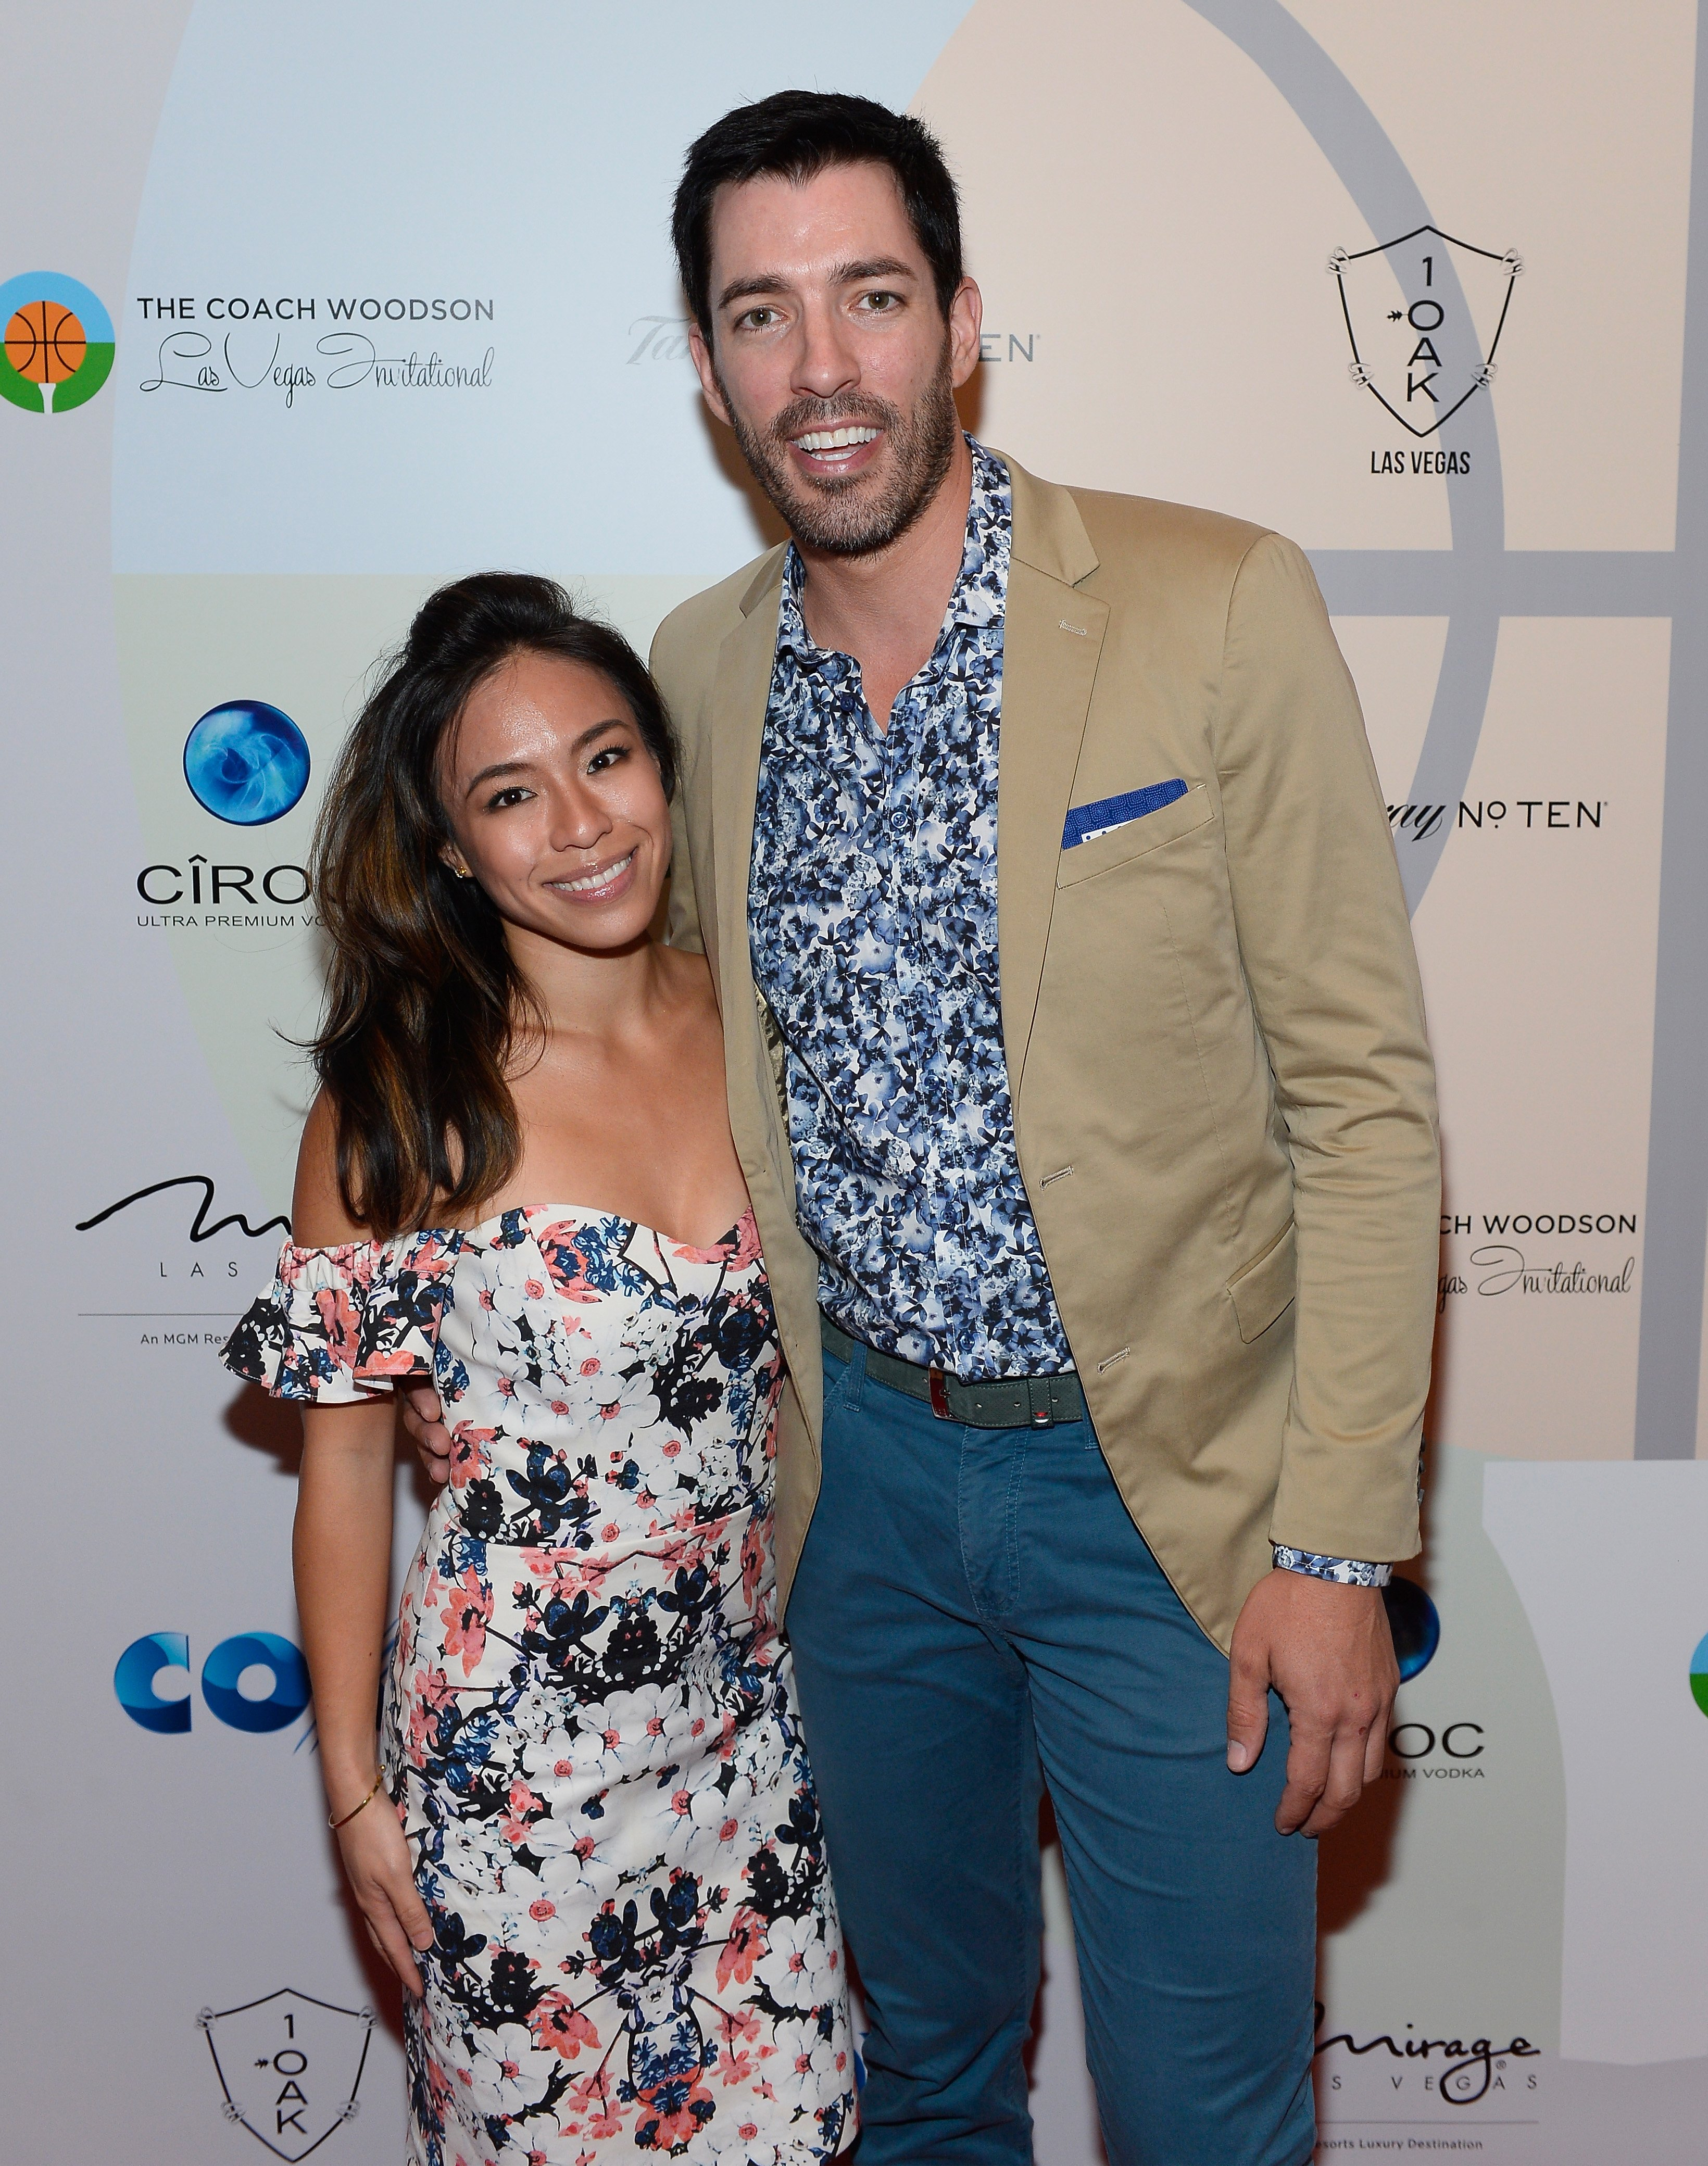 Linda Phan and Drew Scott at the Coach Woodson Las Vegas Invitational red carpet and pairings gala. | Source: Getty Images